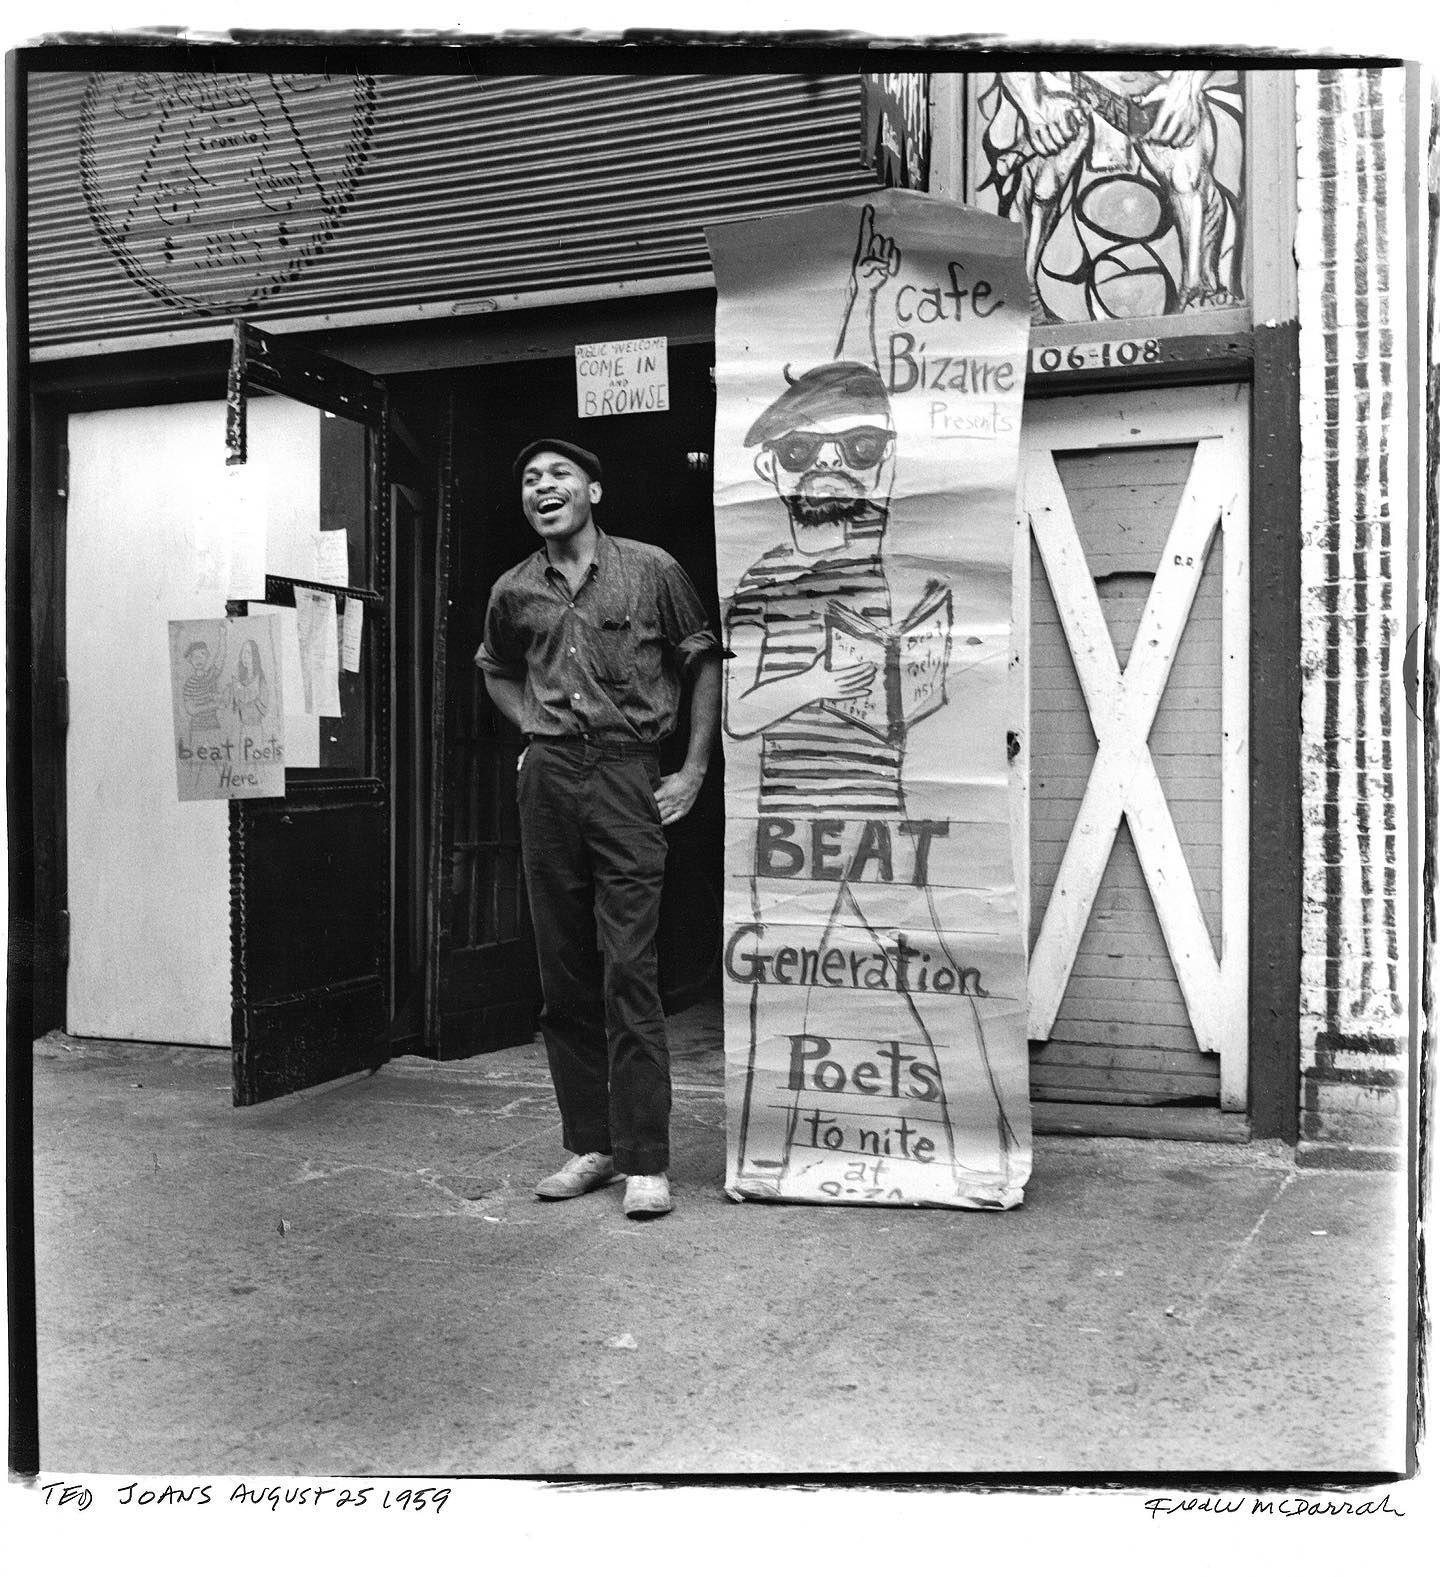 Now for part 3 of 3 in this week's series on Beat clubs of 1960s NYC 🌃   The first image is a portrait of American painter, poet, and musician Ted Joans (1928 - 2003) in front of Cafe Bizarre at 106 West 3rd Street, August 25th, 1959. He stands next to a poster that advertises 'Beat Generation Poets tonite'.  Cafe Bizarre was one of the more popular coffee houses and had a long history as a venue of music and culture. A jazz club before it was a Beat hangout, Cafe Bizarre was also where Andy Warhol first saw the Velvet Underground perform in 1965. The building was later torn down to make way for an NYU dorm building.  The second image shows American beat poet William Morris reading poetry on stage at the Cafe Caravan, May 24, 1959. This spot was known for its Sunday night poetry, with poets like Morris, Joans, and Hugh Romney (AKA Wavy Gravy).  © Fred W. McDarrah/MUUS Collection